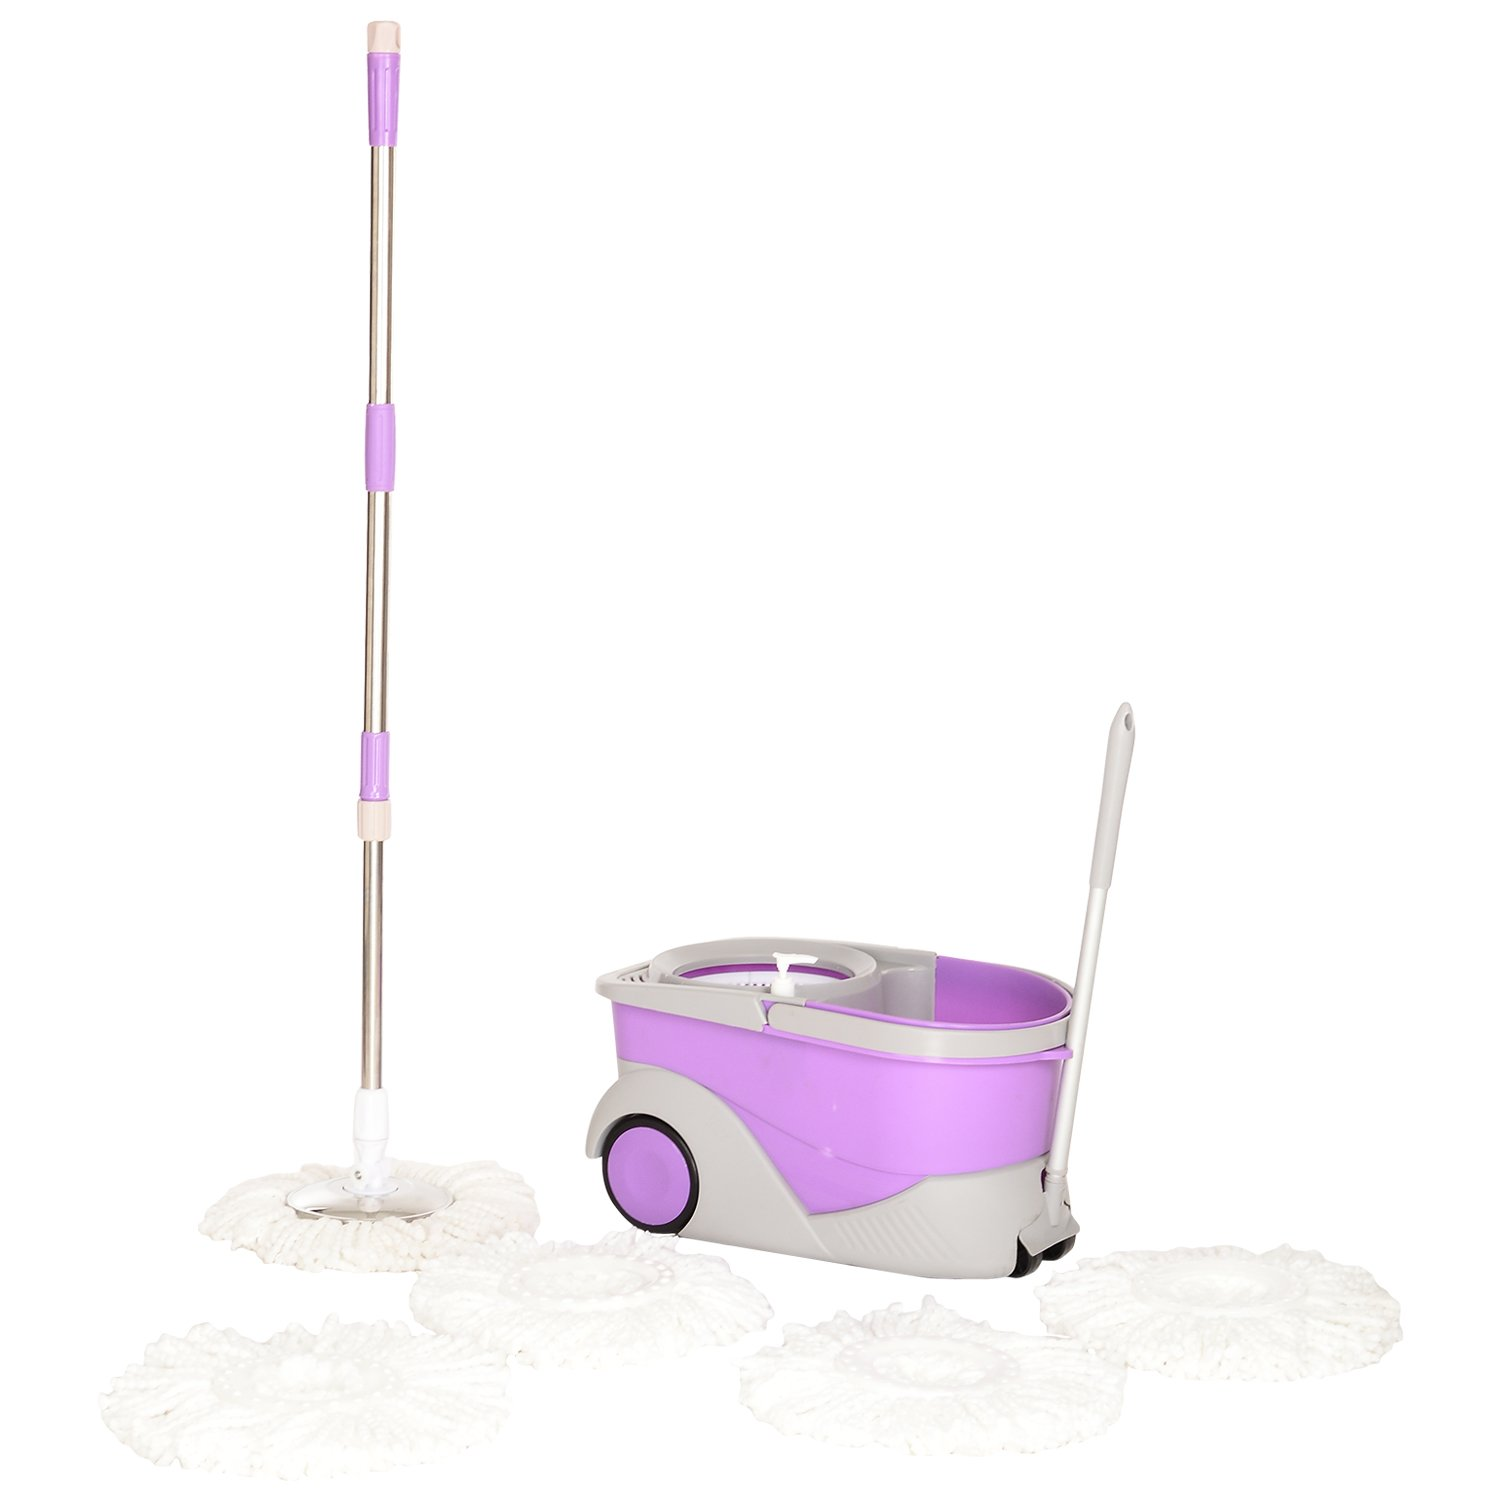 mop microfiber shopping egoflex line system wringing and cleaner wet floors dust hands cleaning wash guides at dry floor self cheap free find on deals